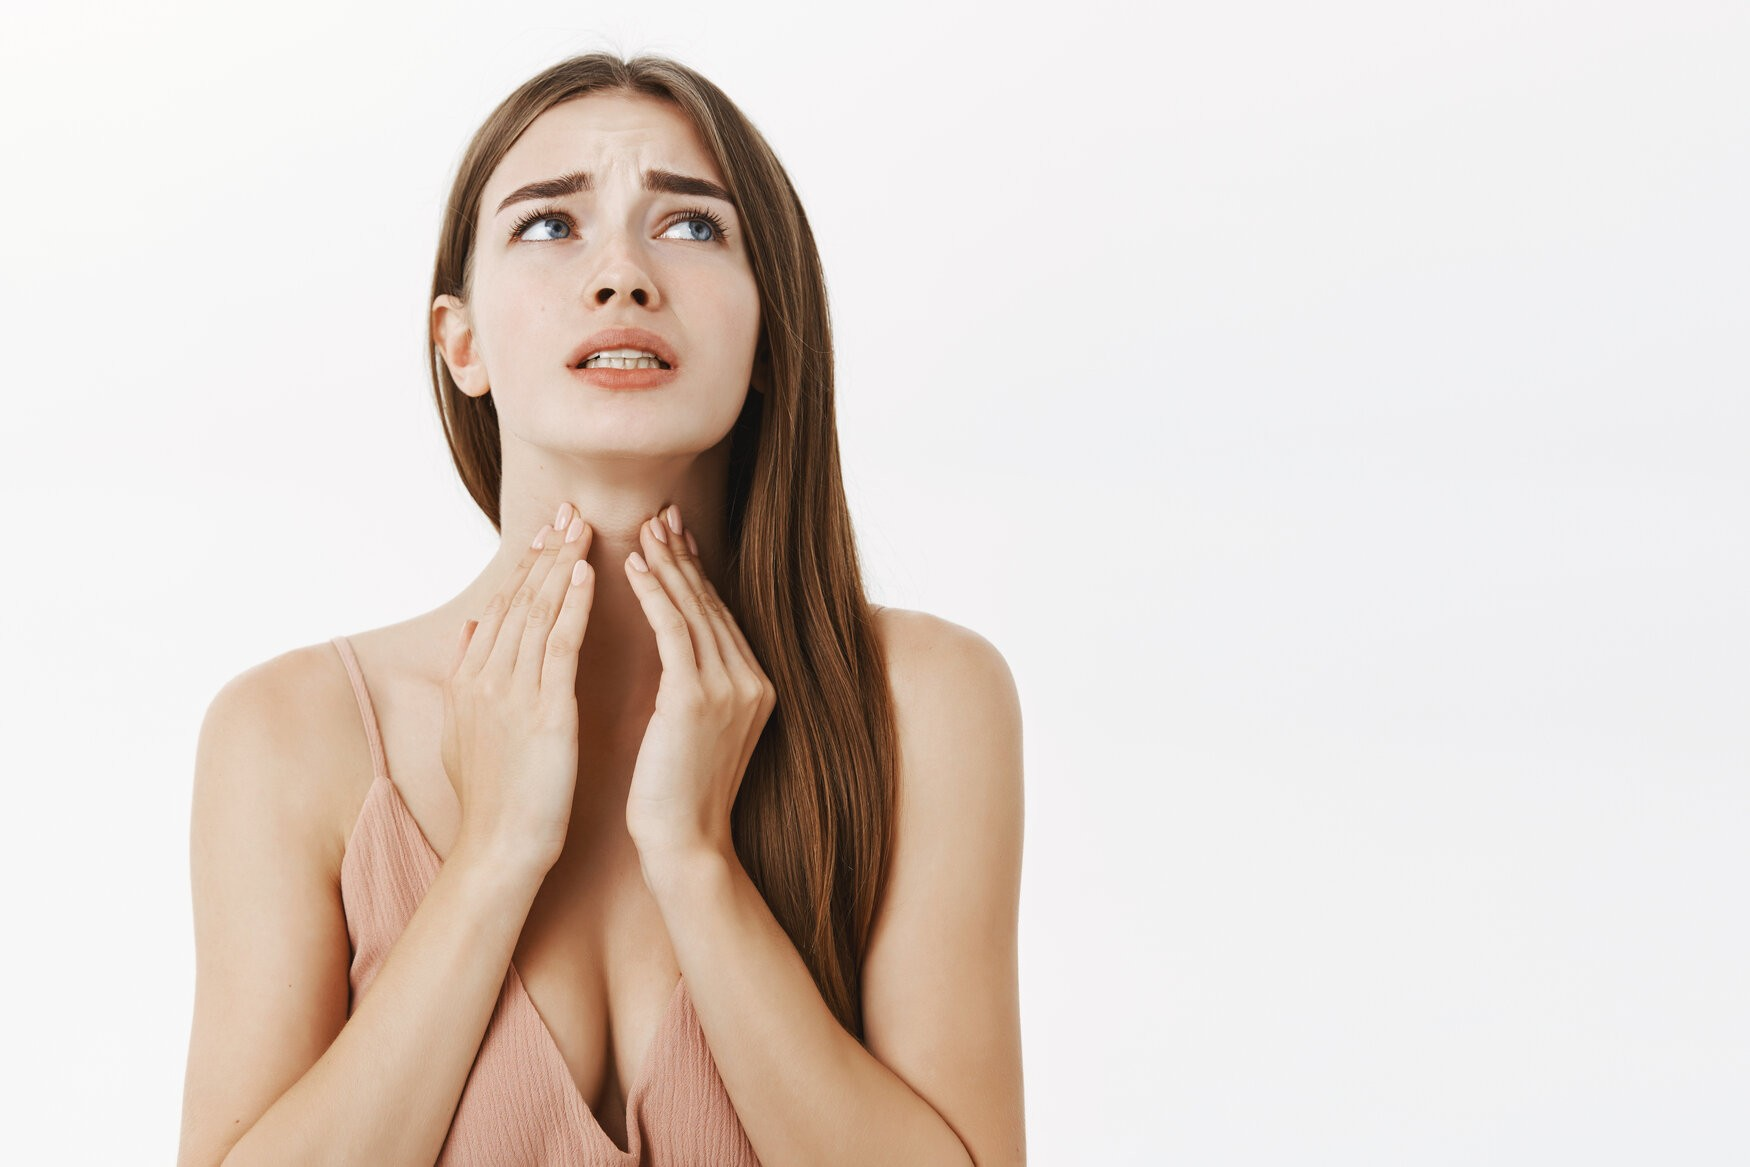 rsz woman getting ill before important meeting feeling discomfort and suffering from pain in throat touching neck frowning an clenching teeth from terrible feeling posing